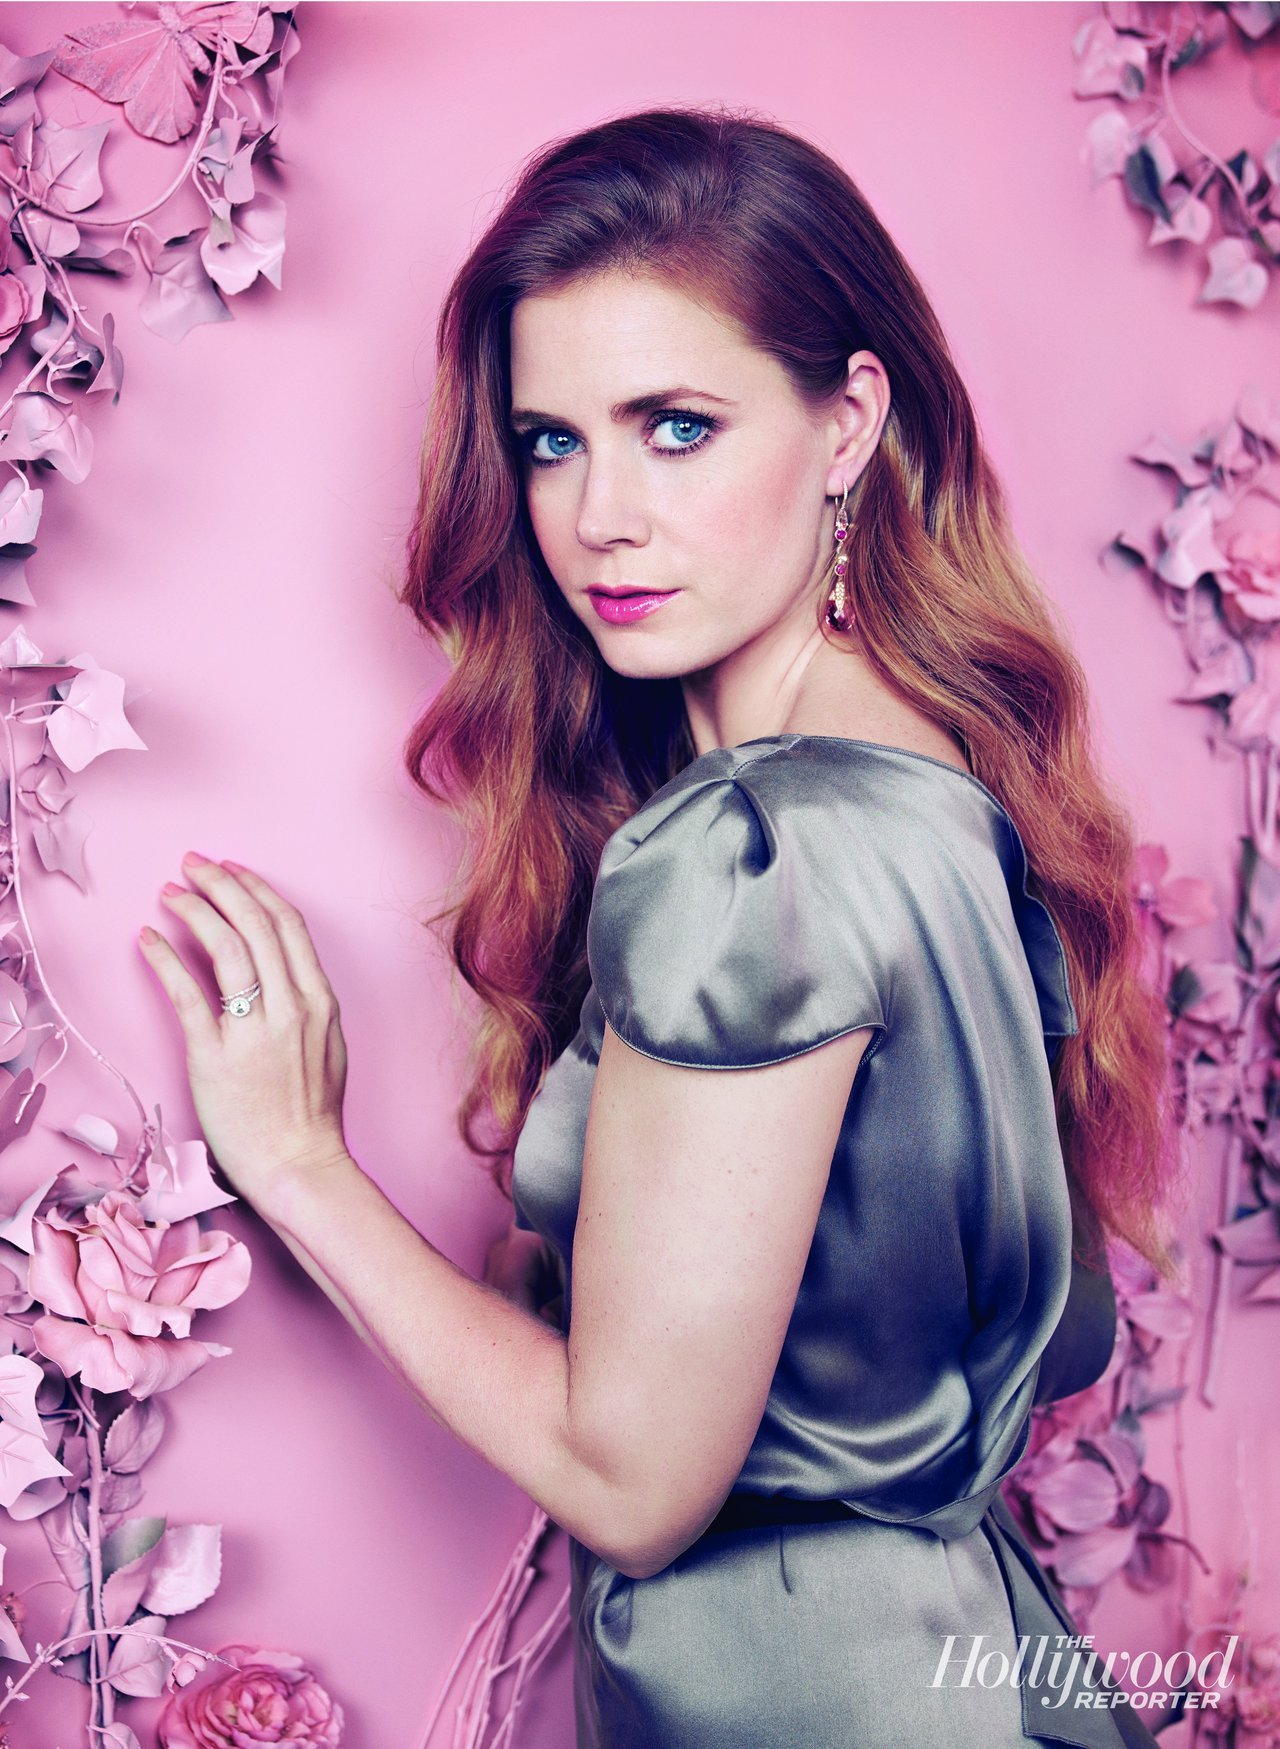 Amy Adams - The Hollywood Reporter by Joe Pugliese, November 19th 2012